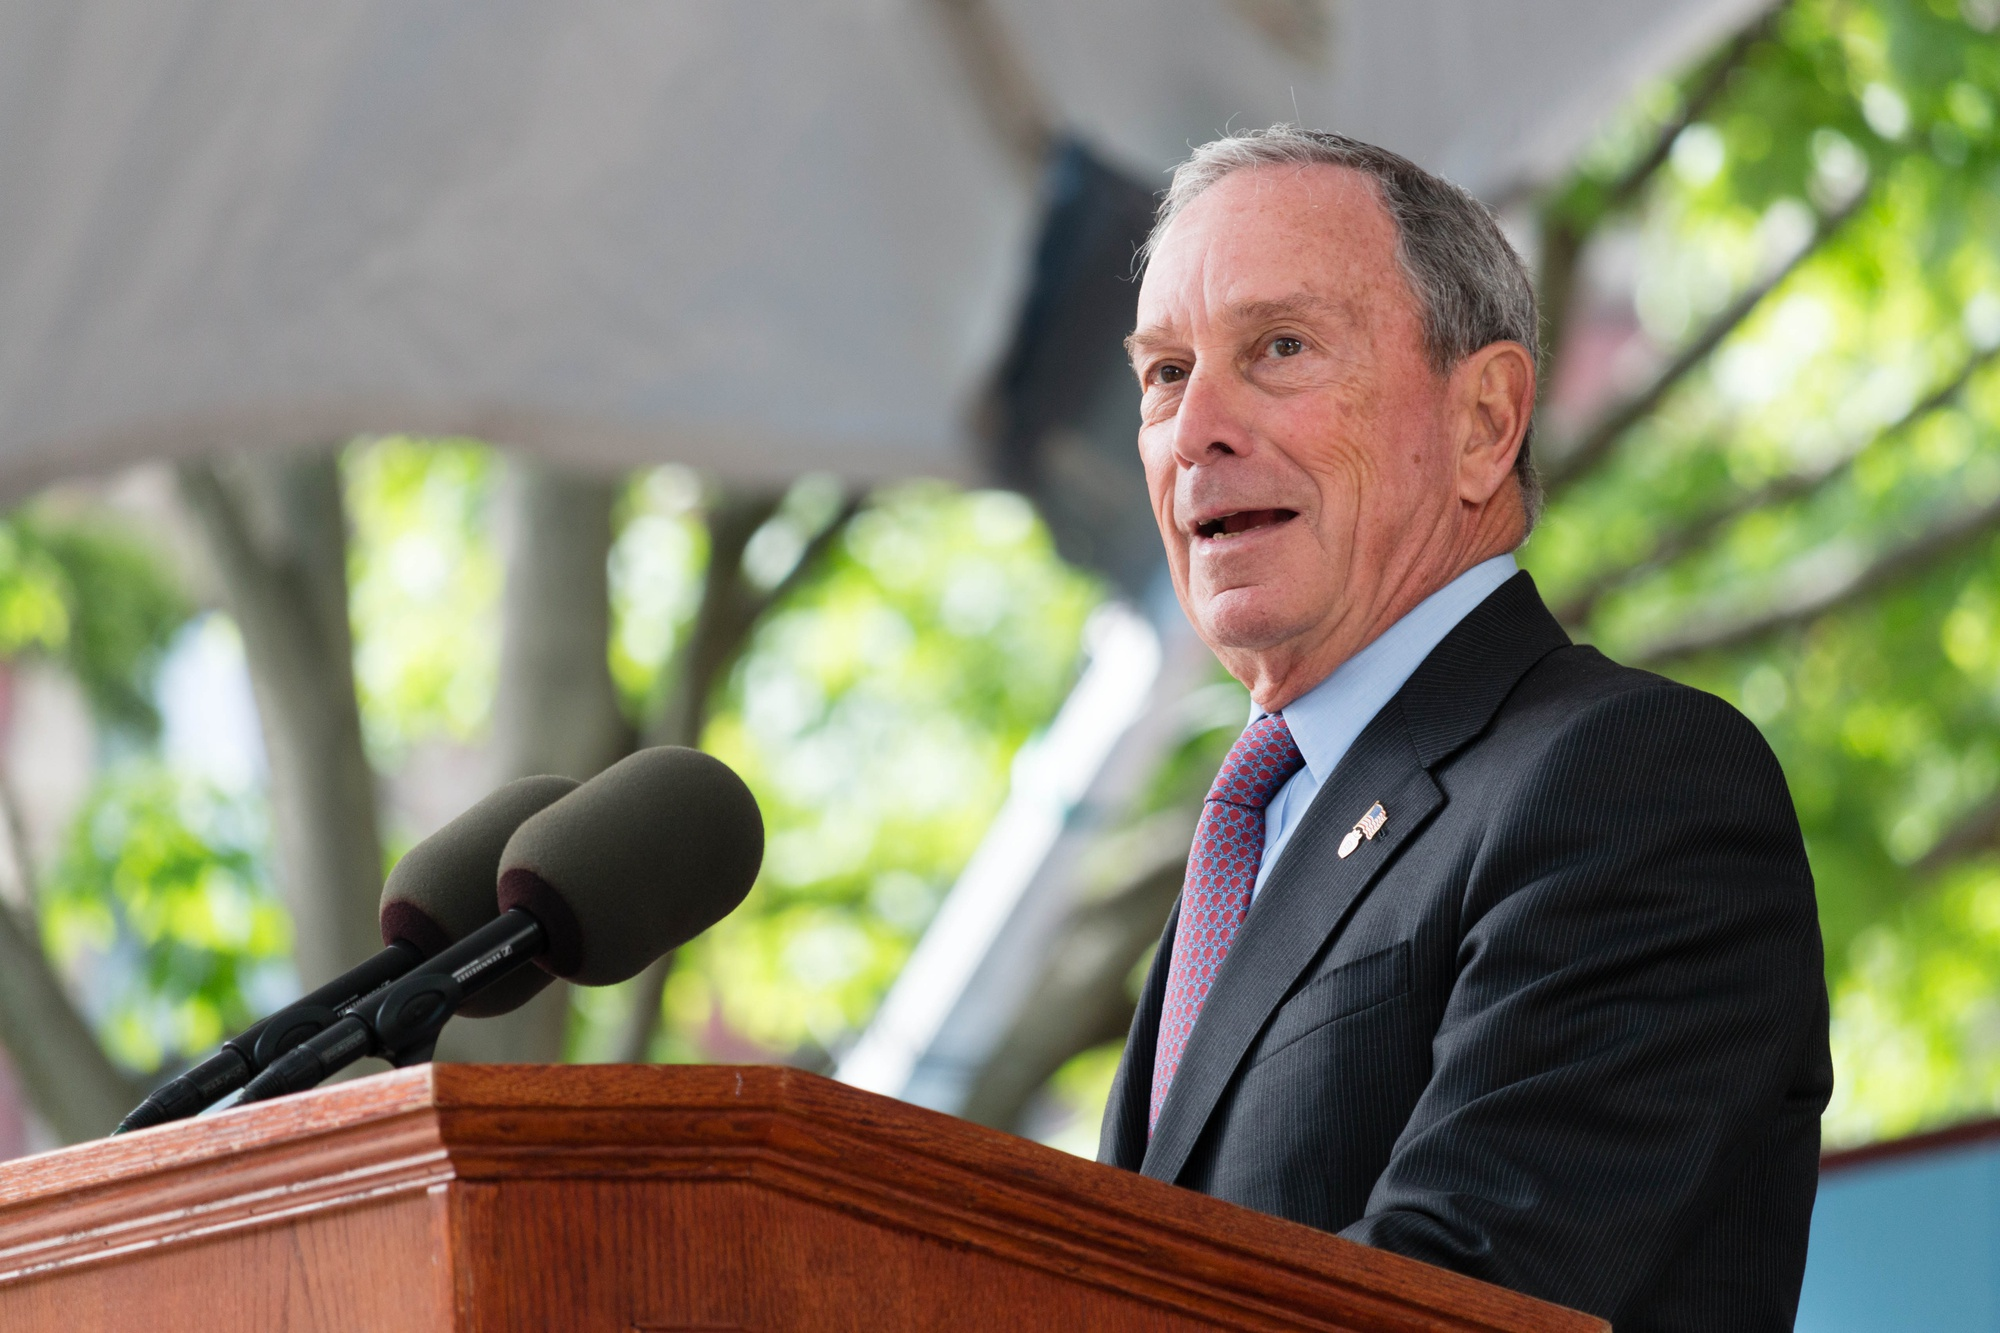 Former New York City mayor Michael R. Bloomberg speaks out against the 'censorship' of ideas in universities, specifically those in the Ivy League.